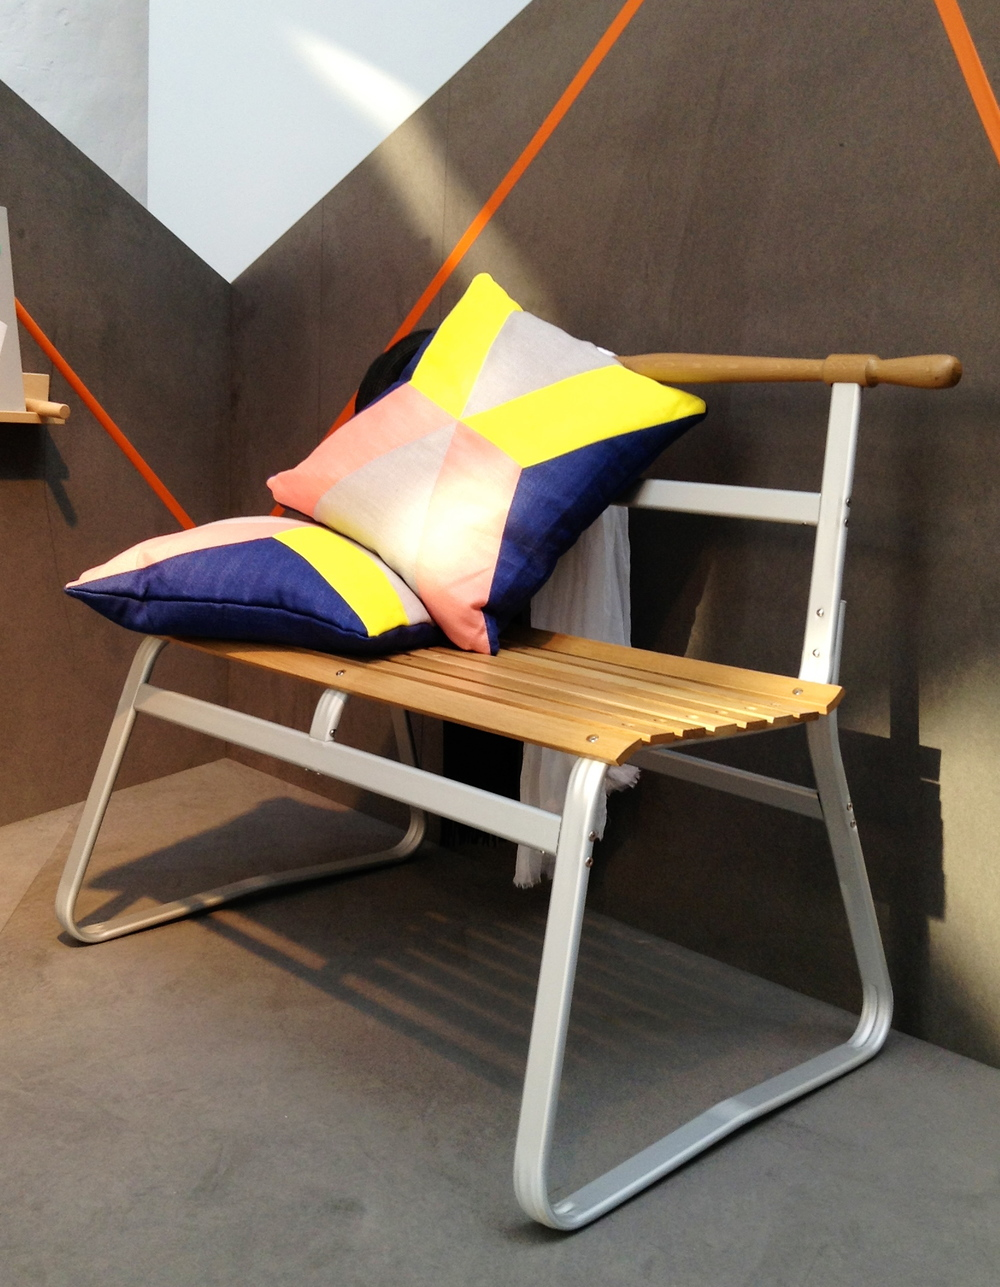 Bench IKEA PS 2014, design Anna Efverlund